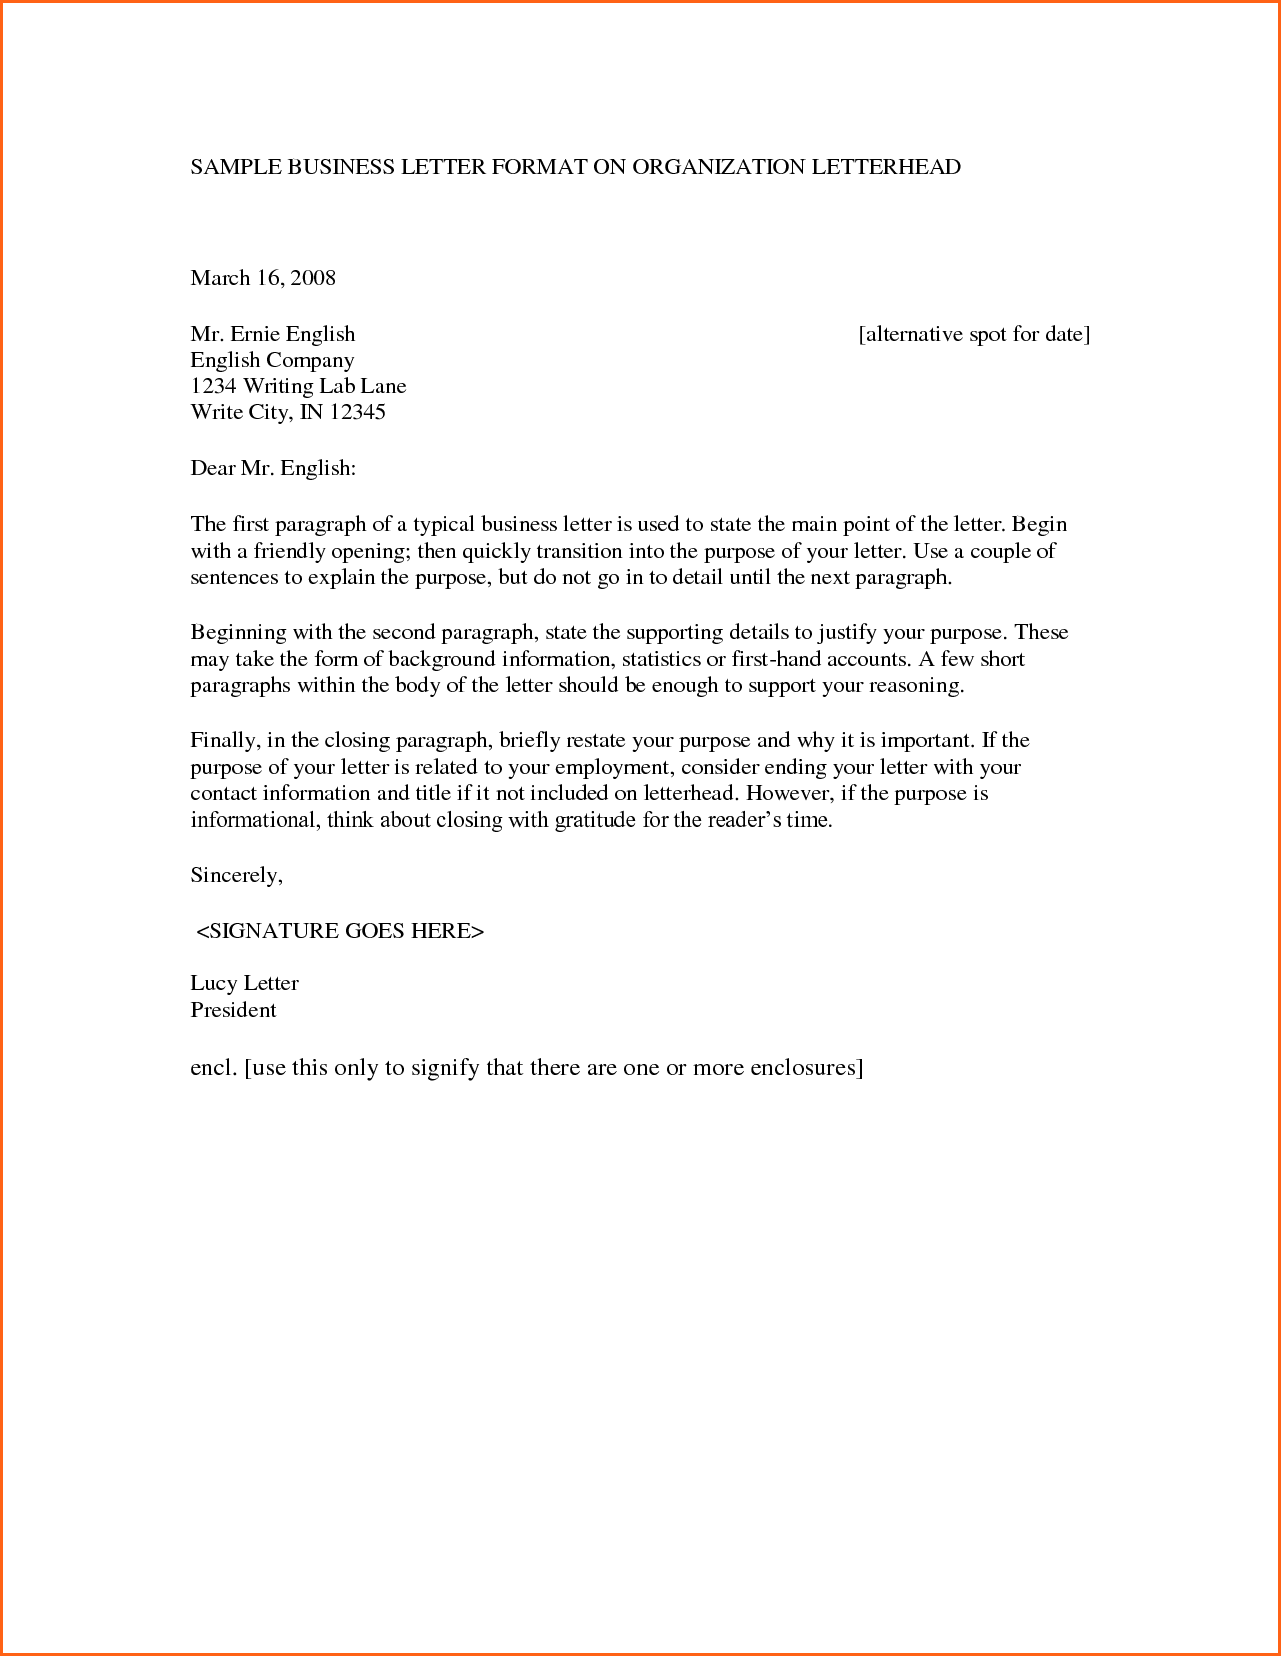 Sample Business Letter Format Company Letterhead Get Now Doc